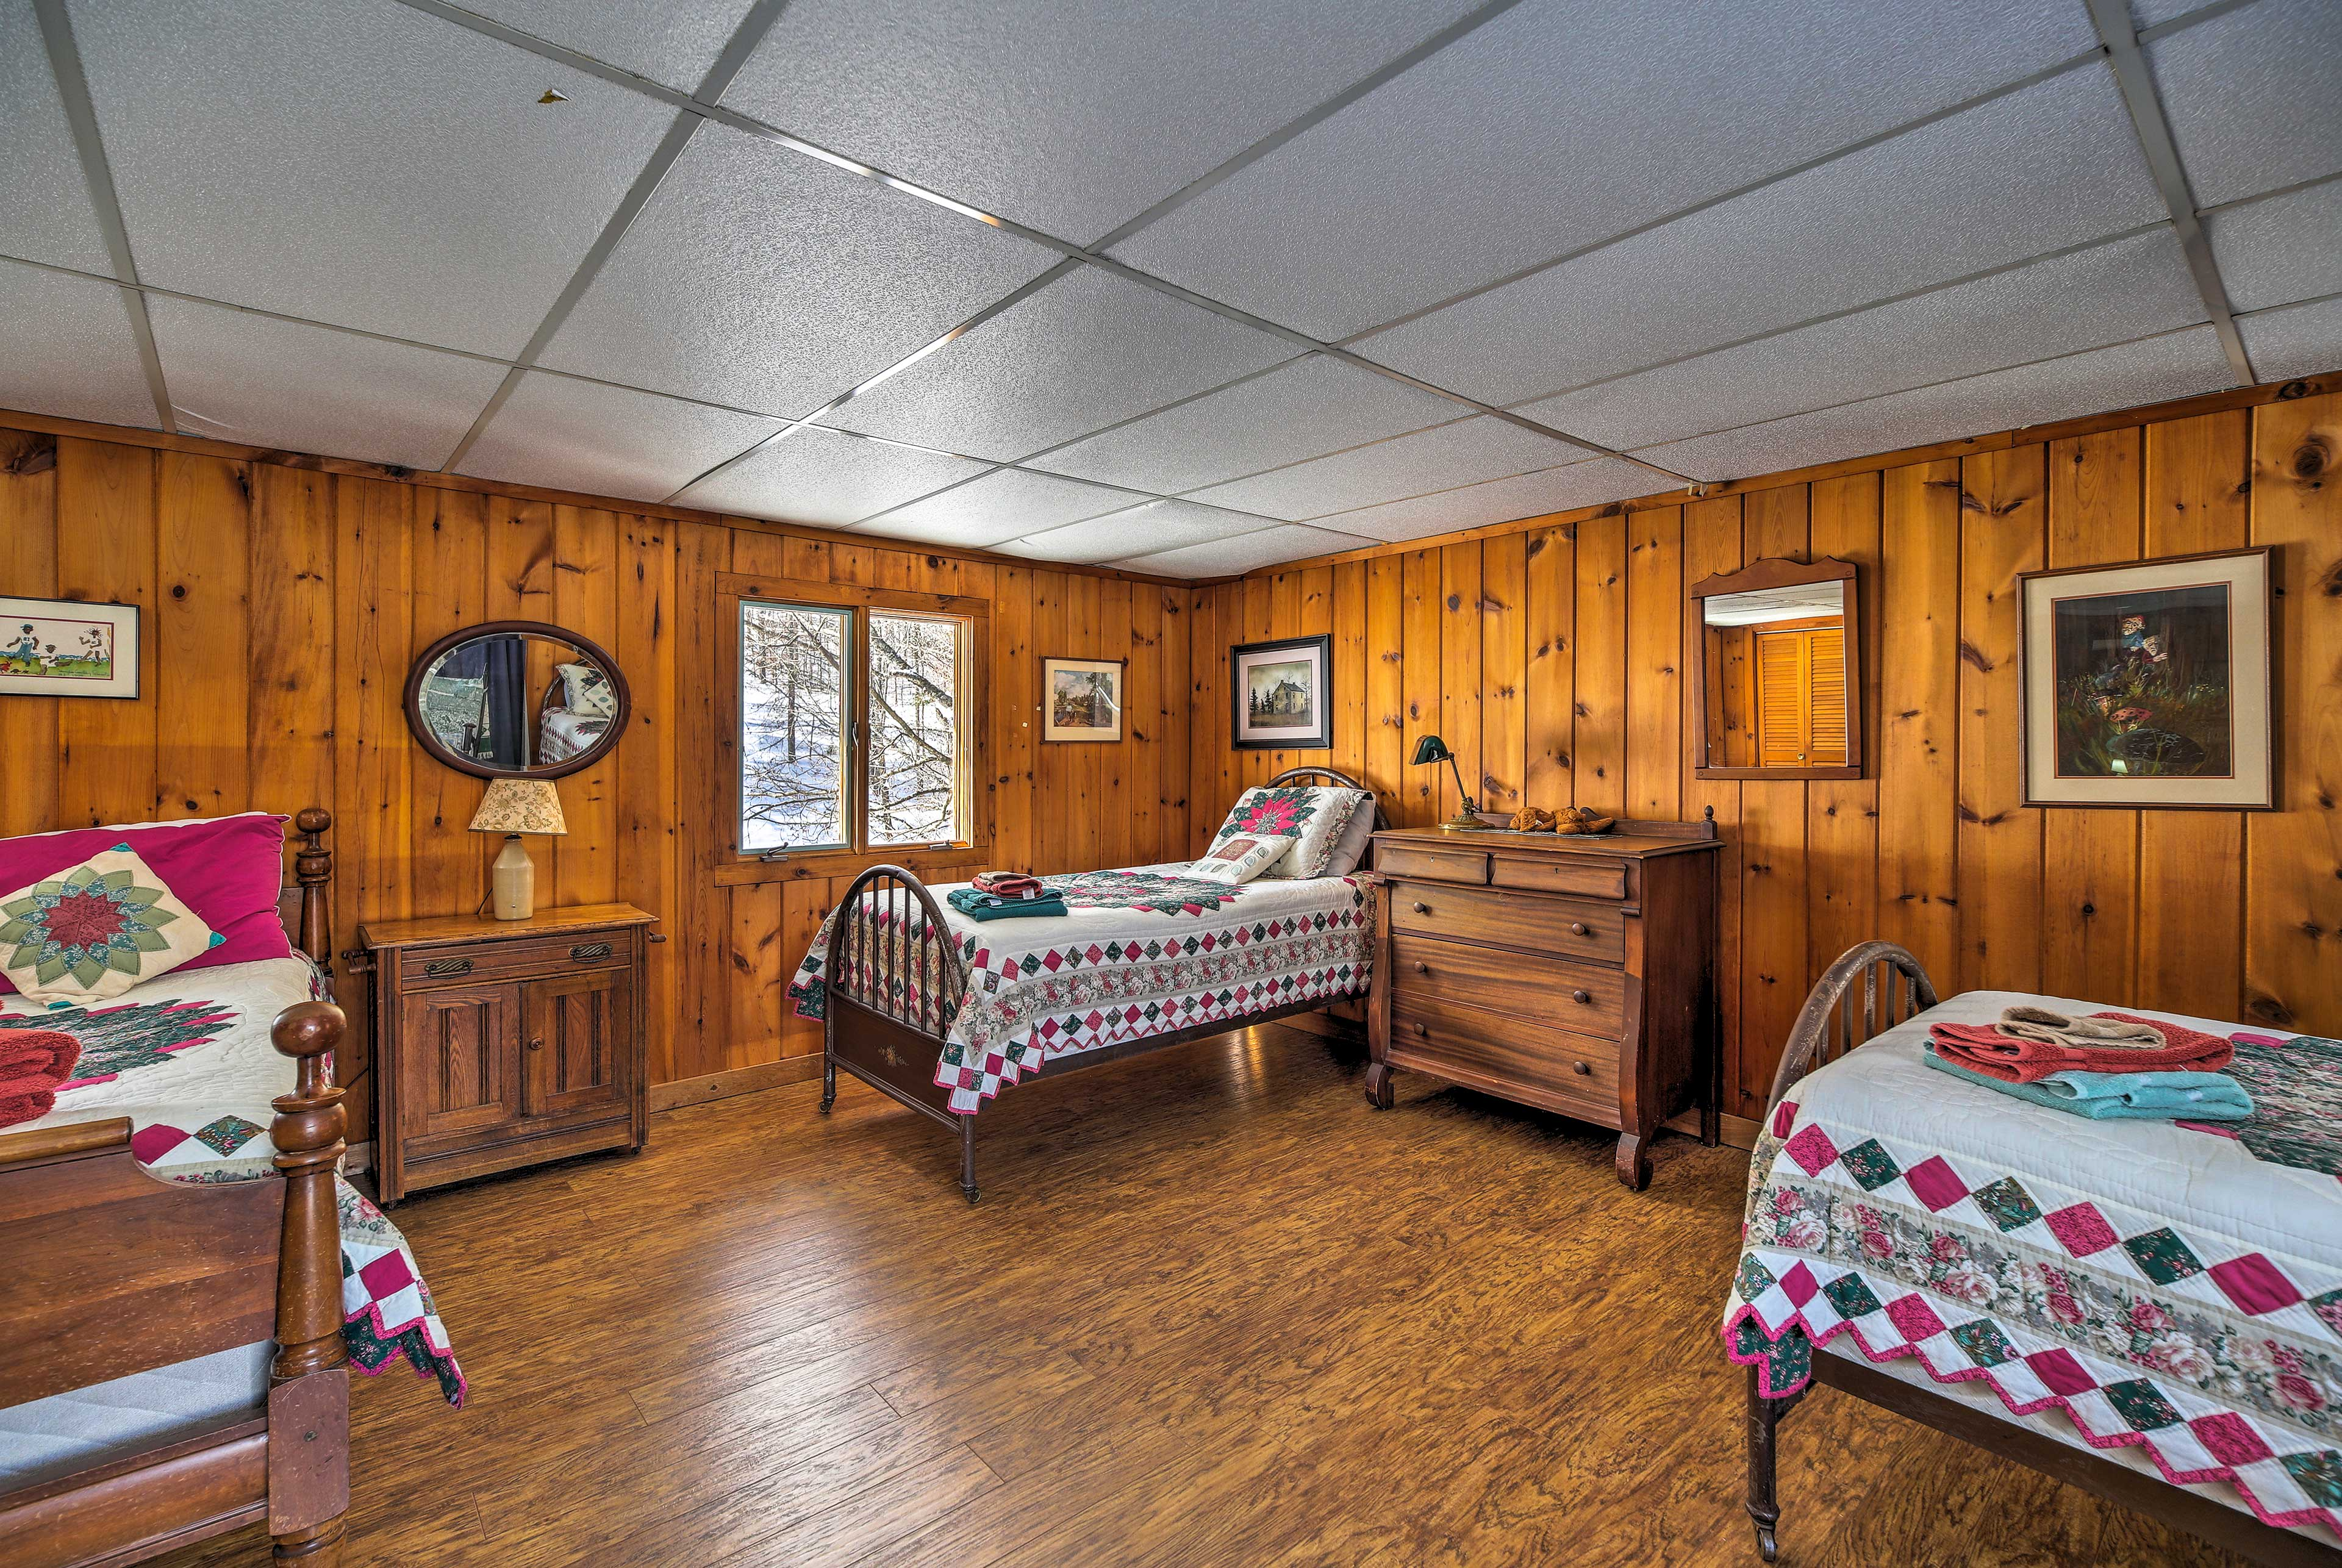 This dorm style bedroom allows the kids to have their own space.